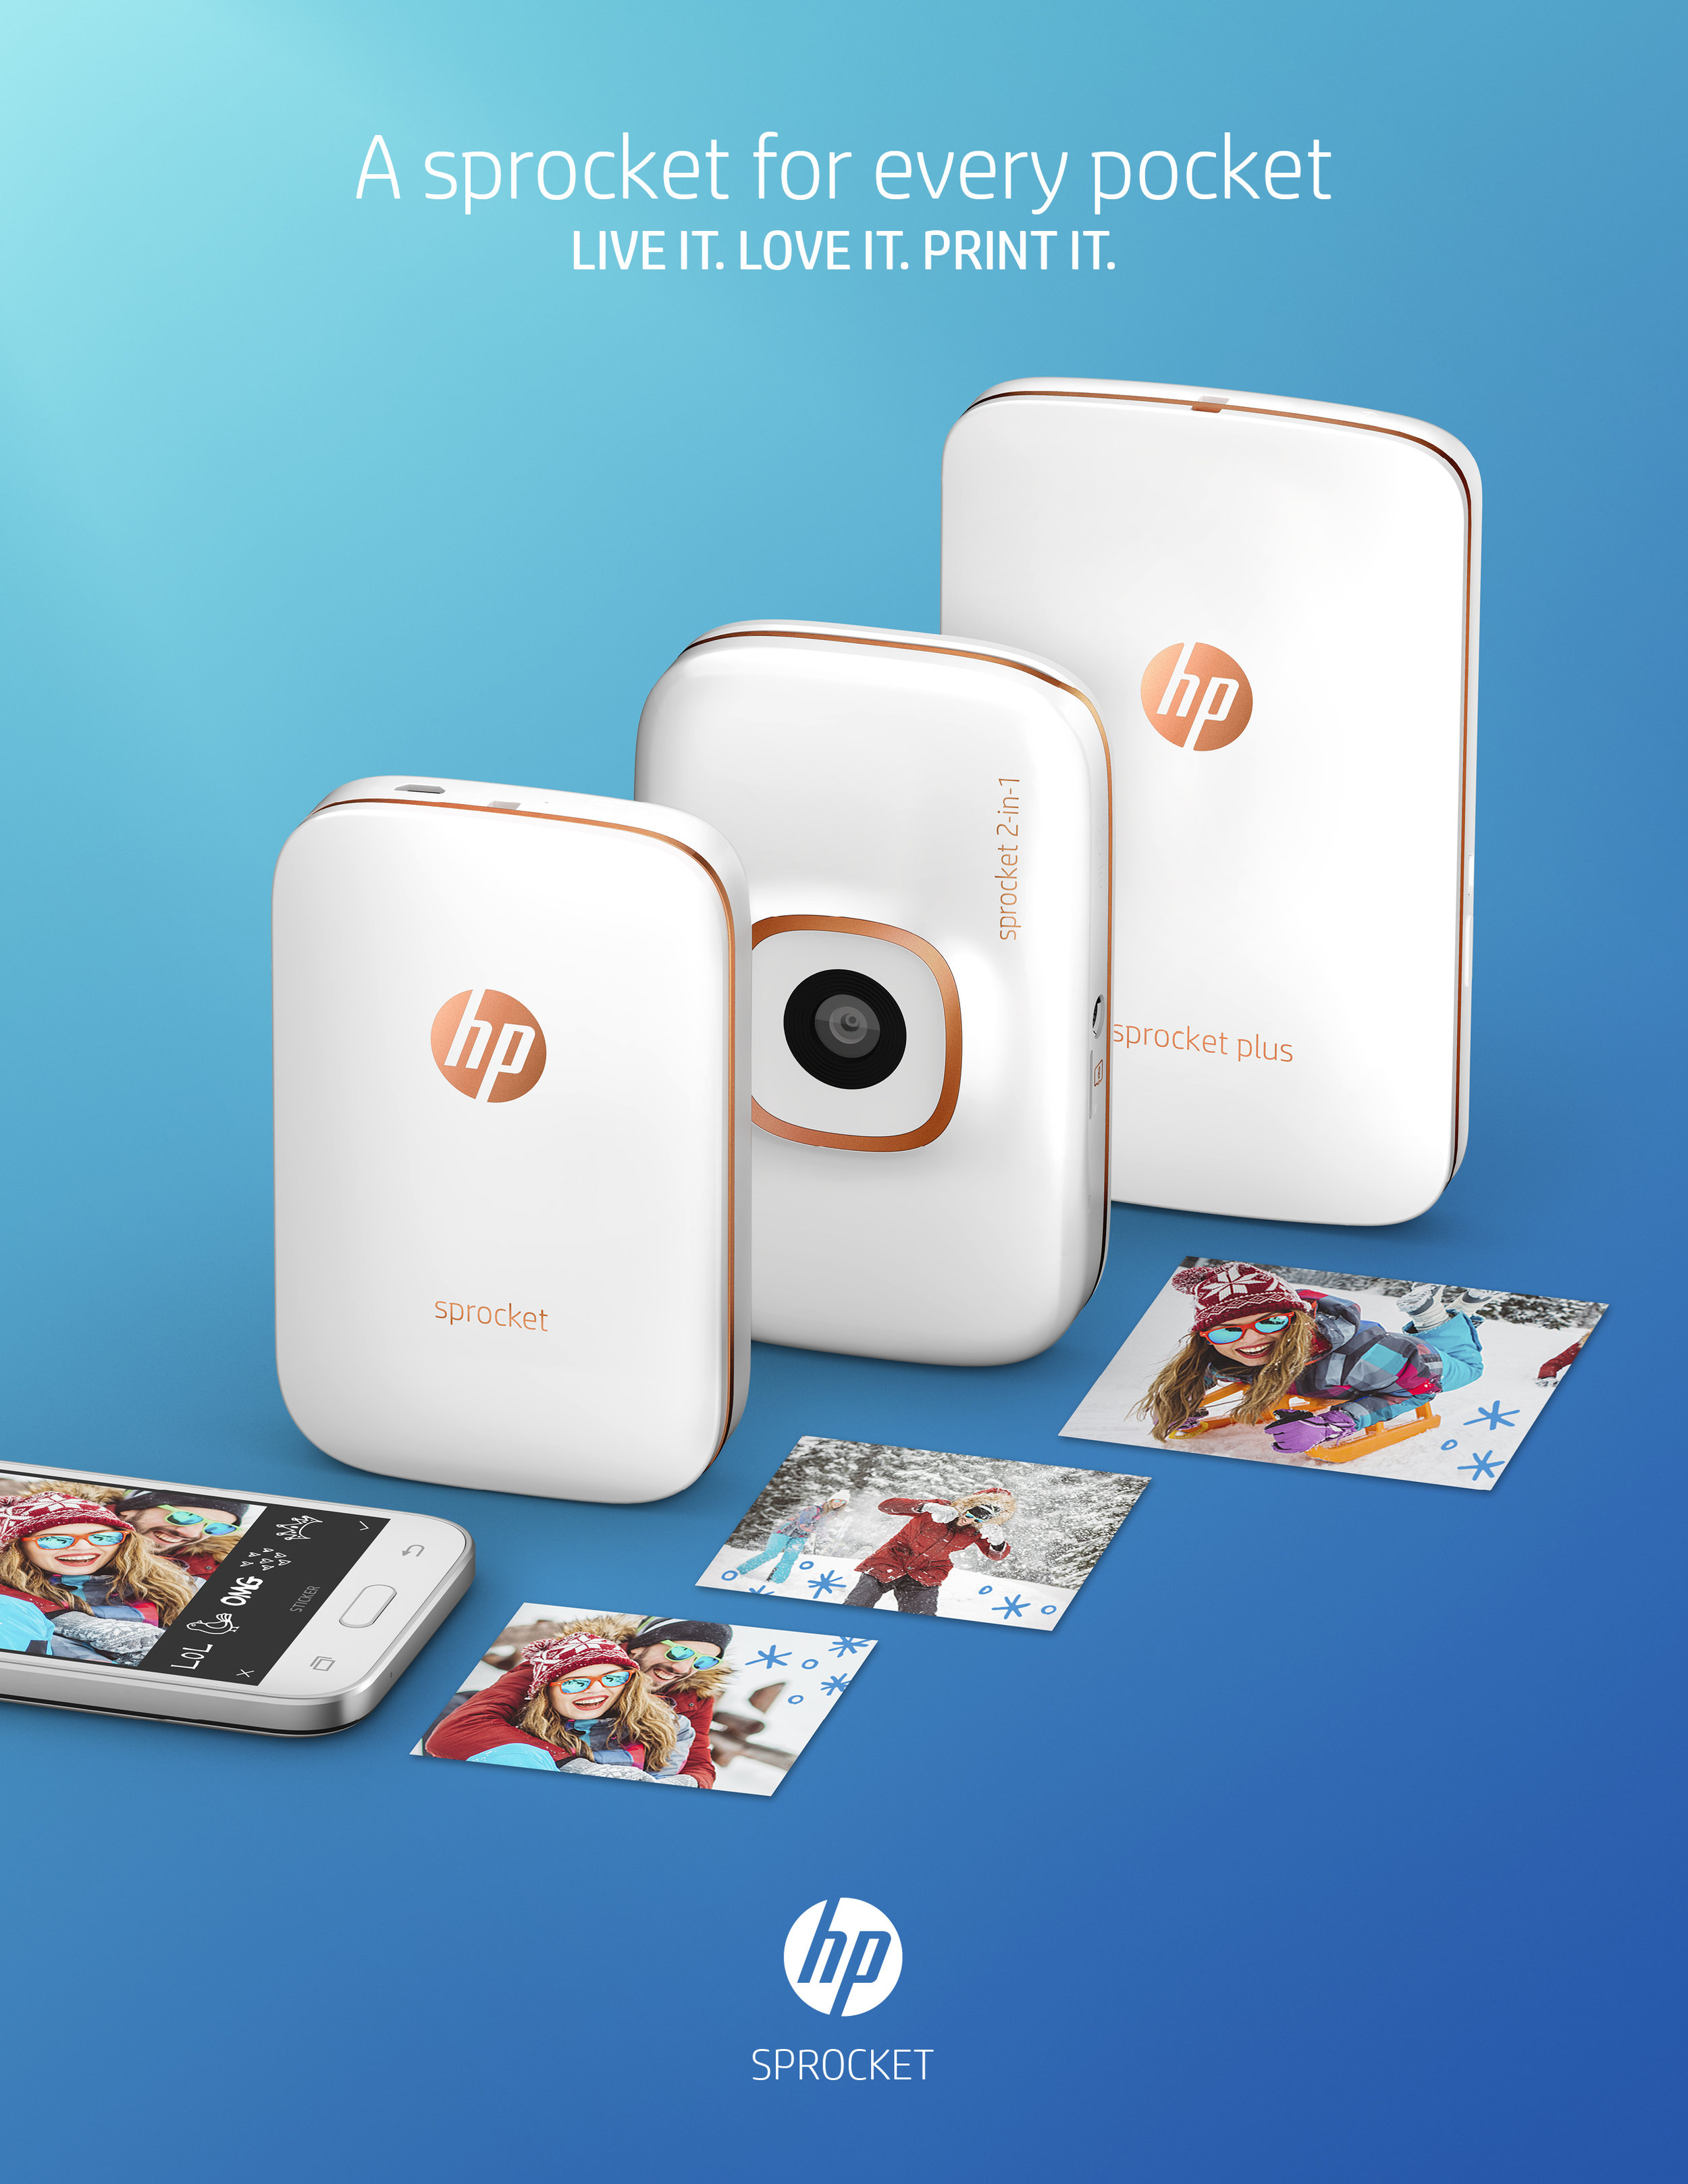 HP SPROCKET MOCKUPS_13.jpg